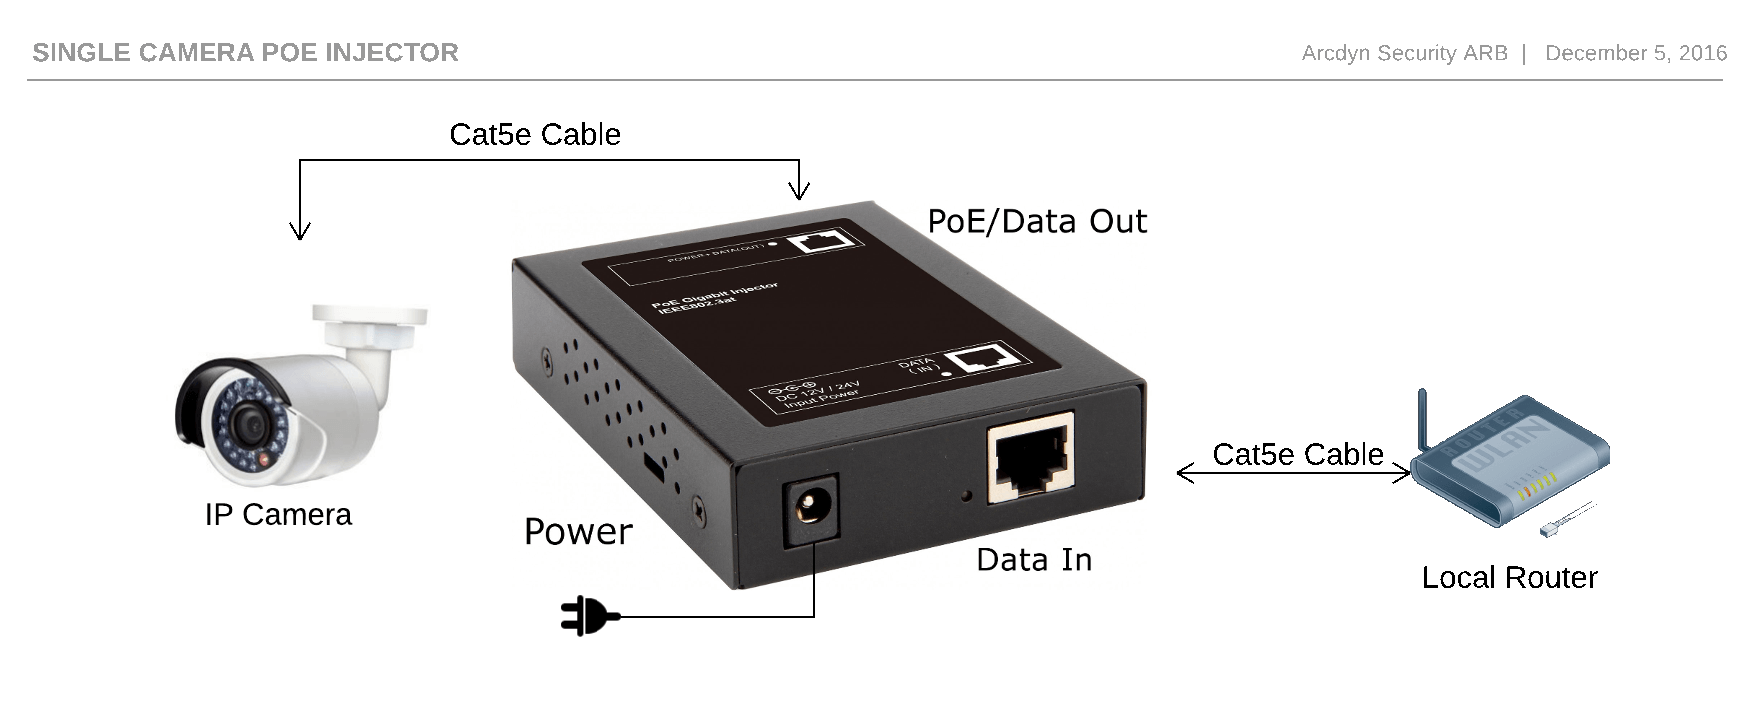 the poe injector itself, a connection to the network, usually a router, or  a switch, and the device that requires the poe injector in this case an ip